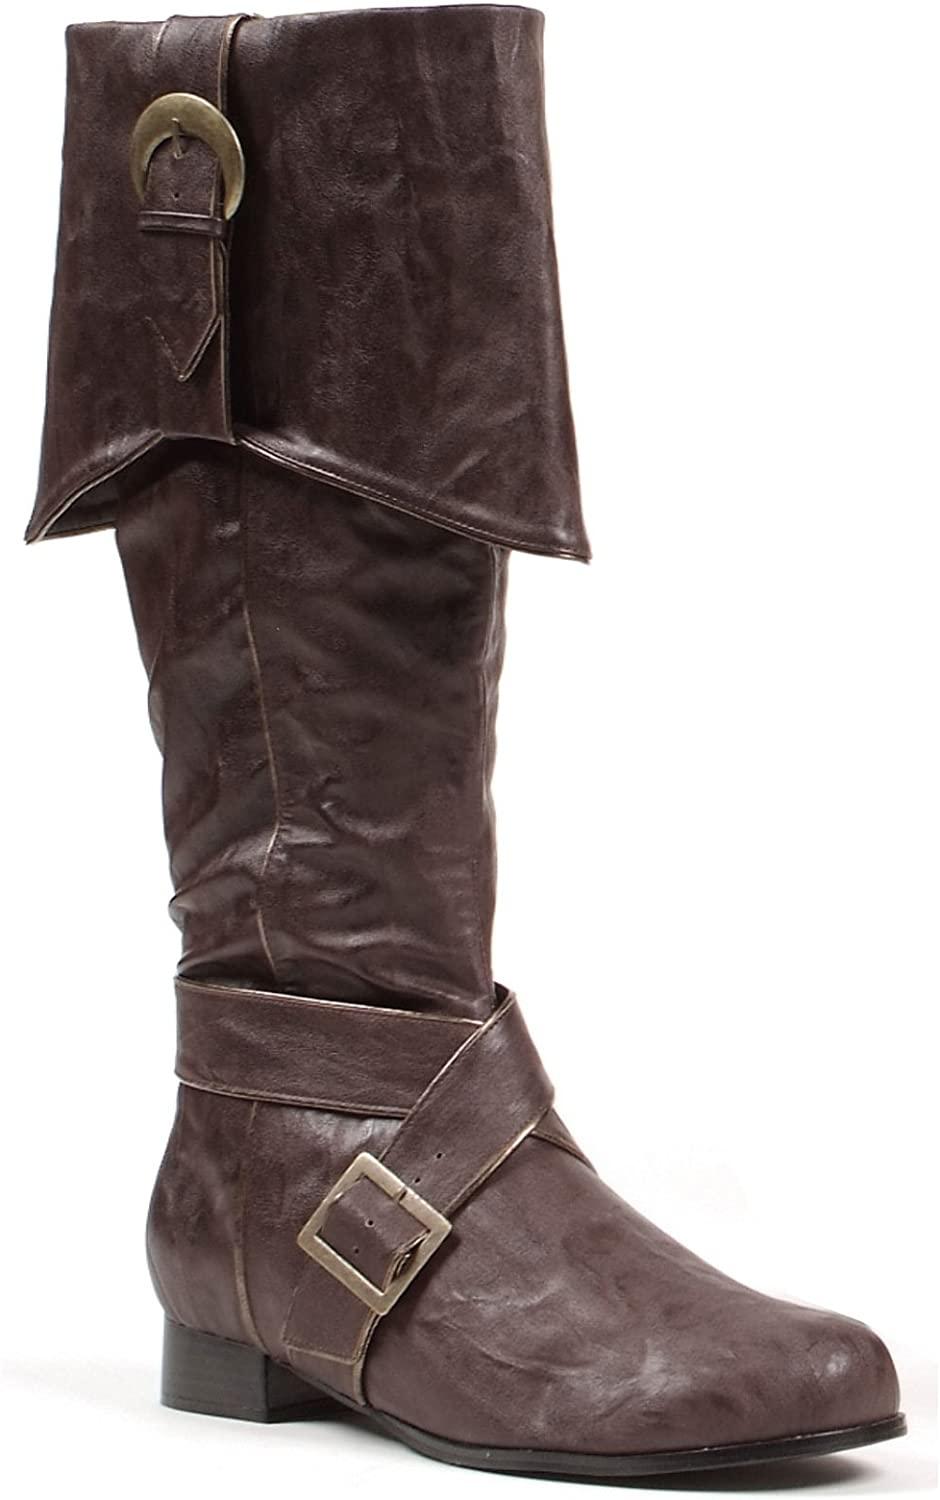 "Ellie Shoes Men's 1"" Heel Knee High Pirate Boots"